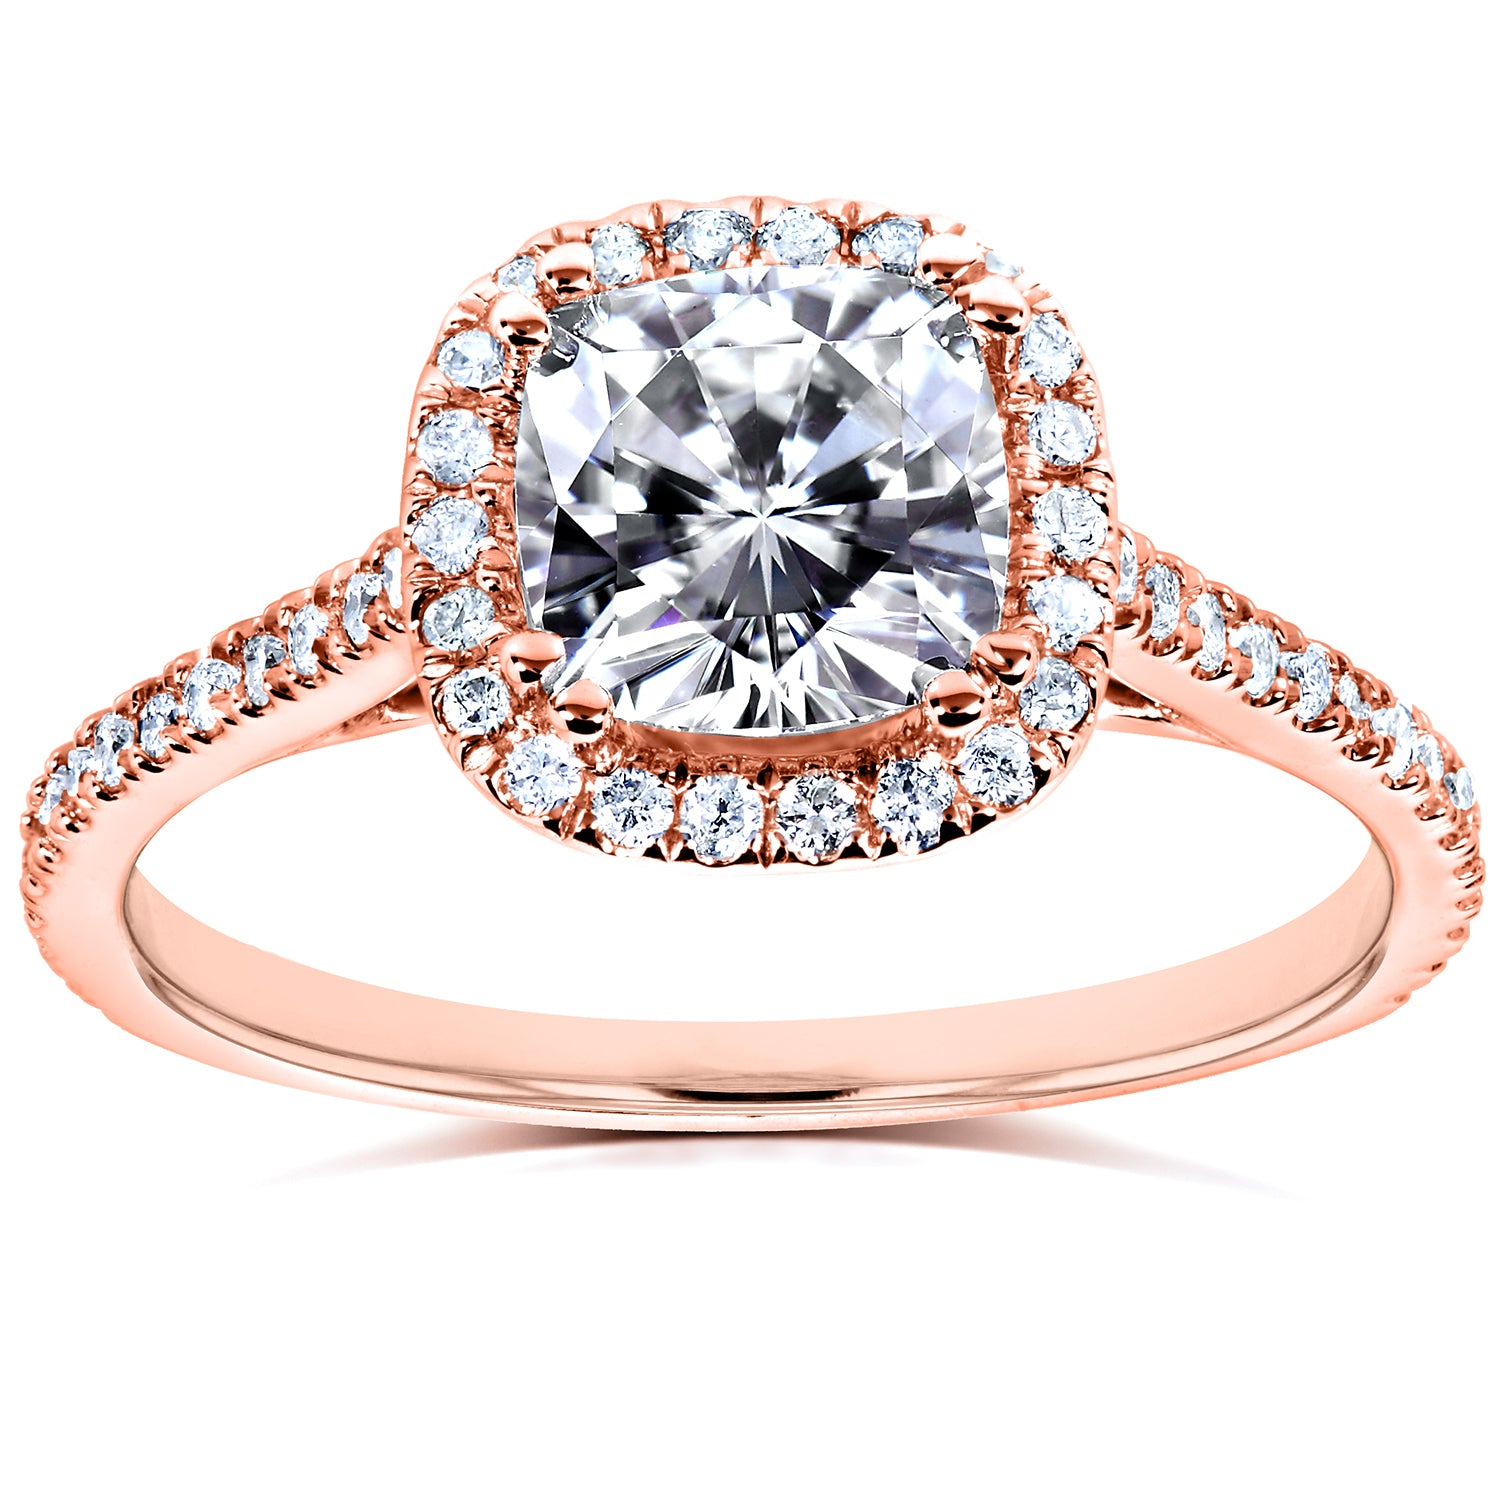 Cheap Cushion-cut Moissanite Engagement Ring with Diamond 1 1/3 CTW 14k Gold - 4.0 rose-gold